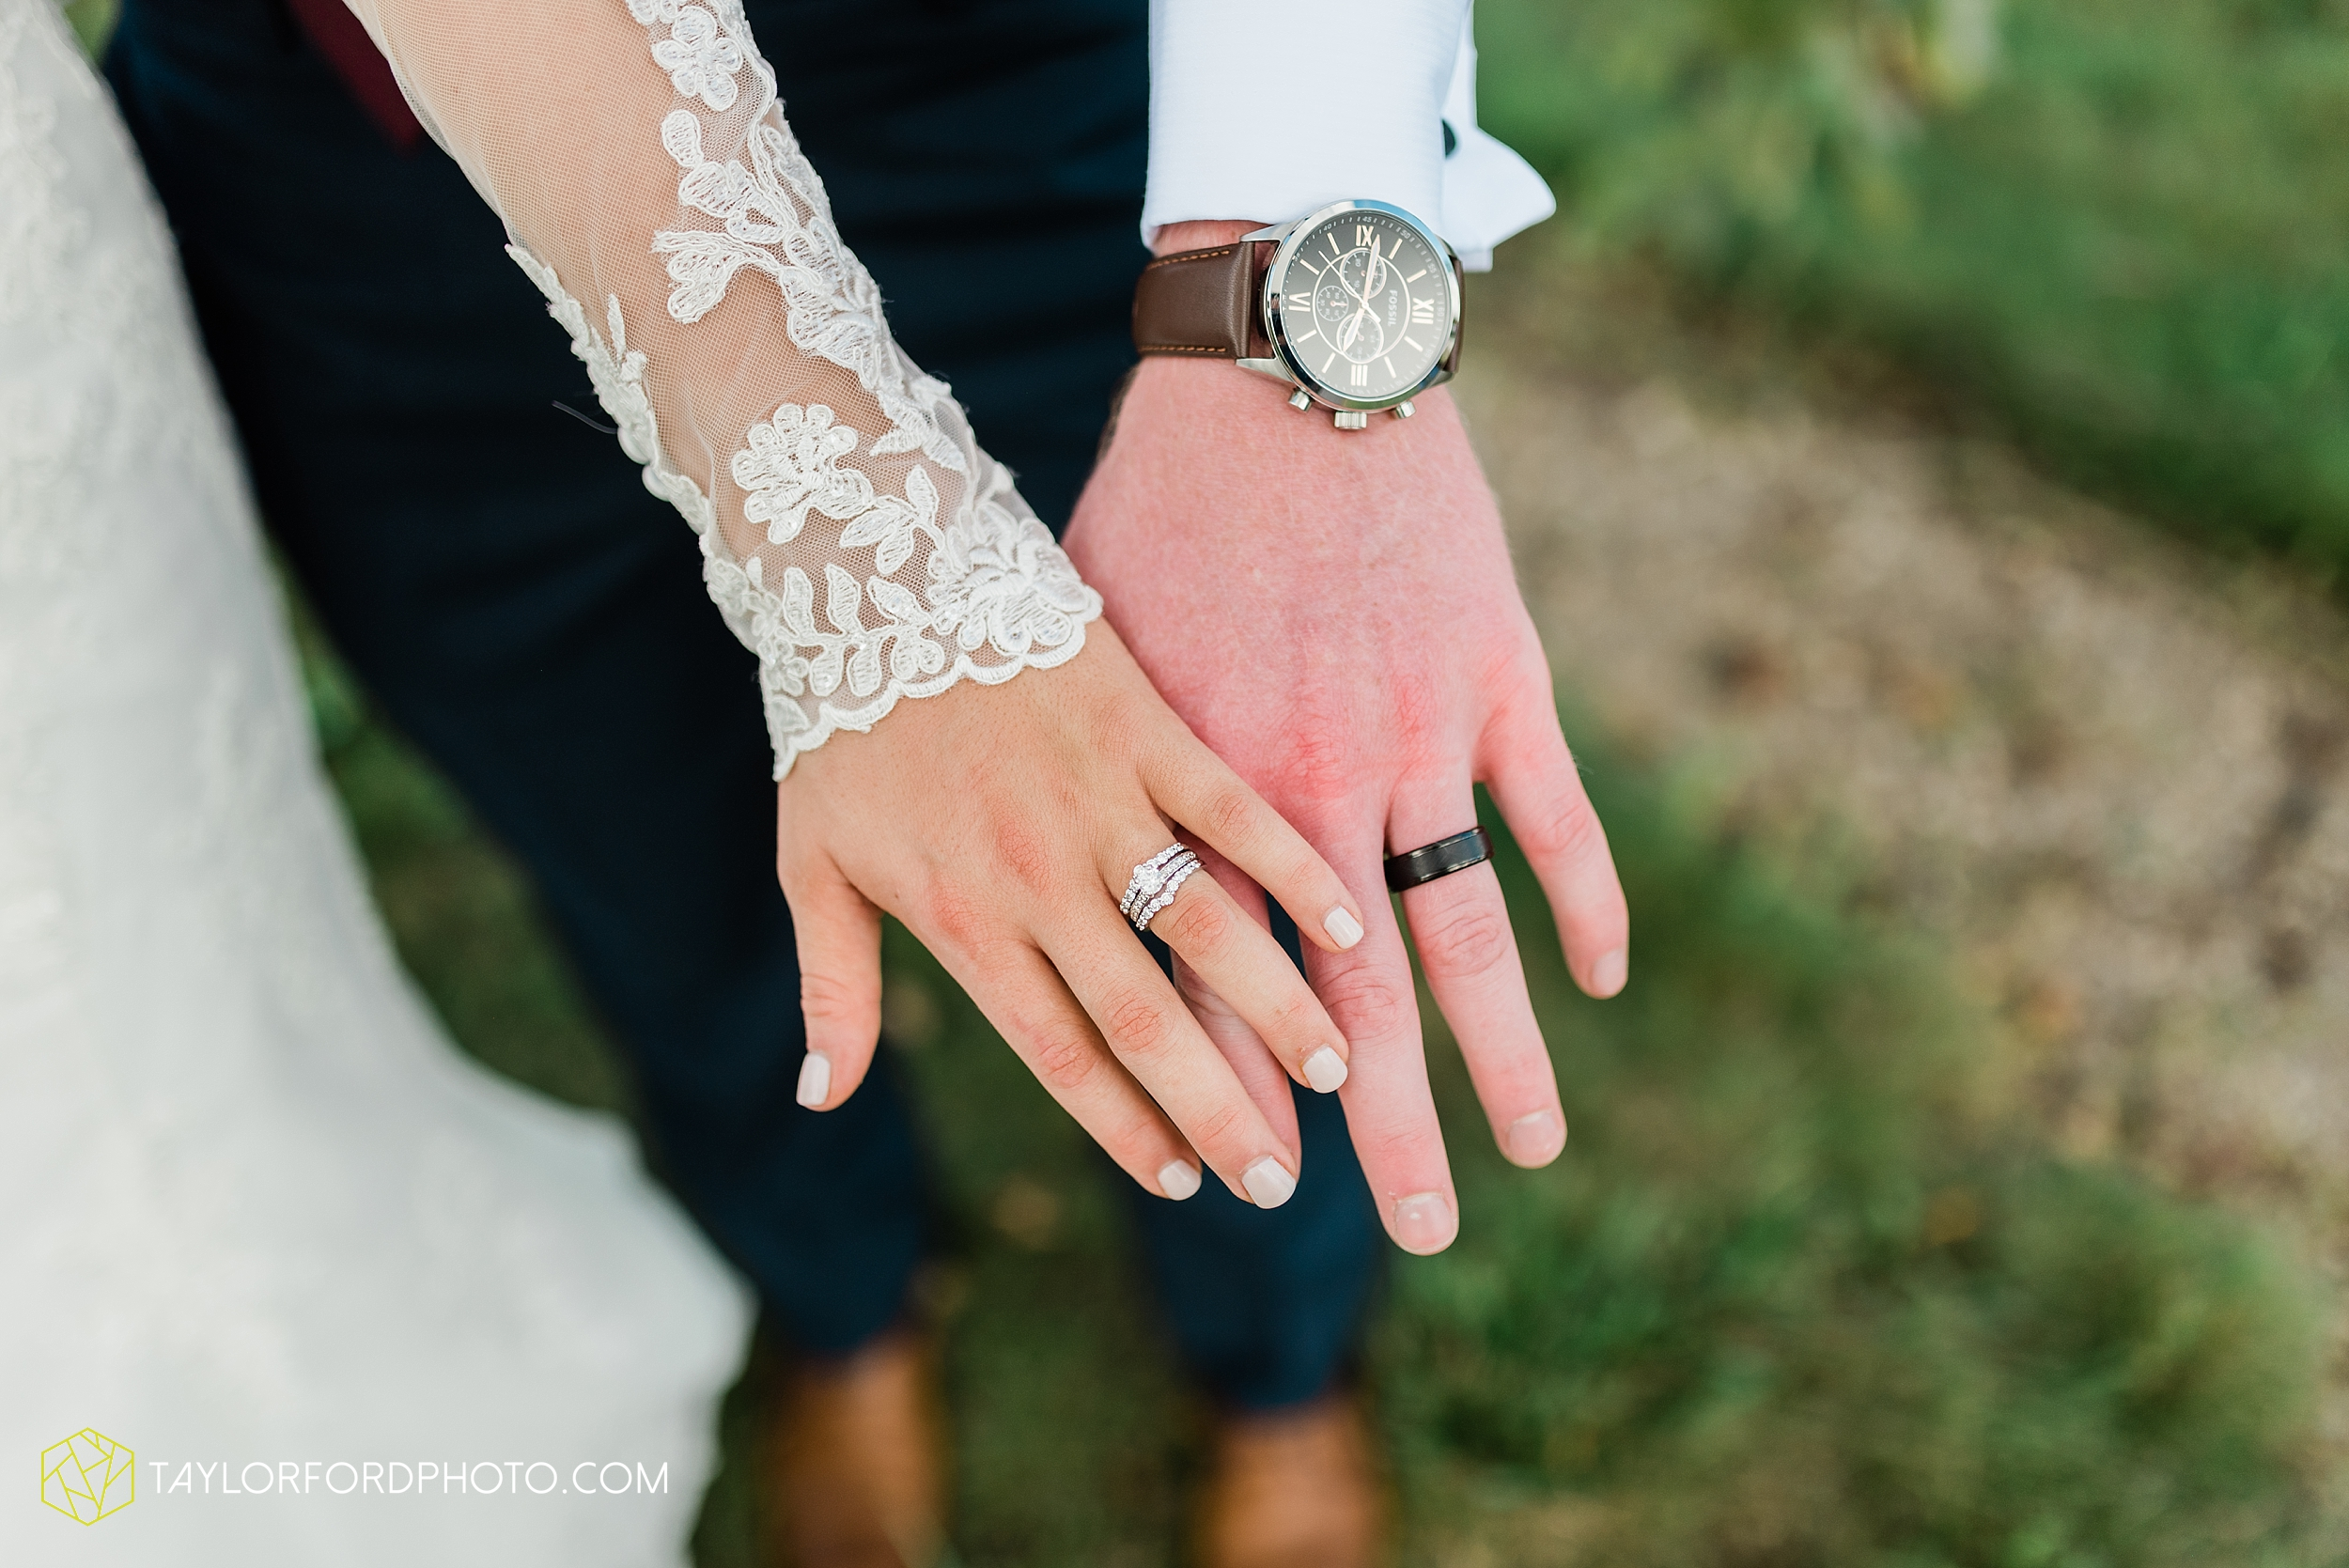 gayle-rayman-mike-steele-ottoville-ohio-wedding-immaculate-conception-parish-center-wedding-sycamore-lake-winery-wannamachers-photographer-taylor-ford-photography_0415.jpg